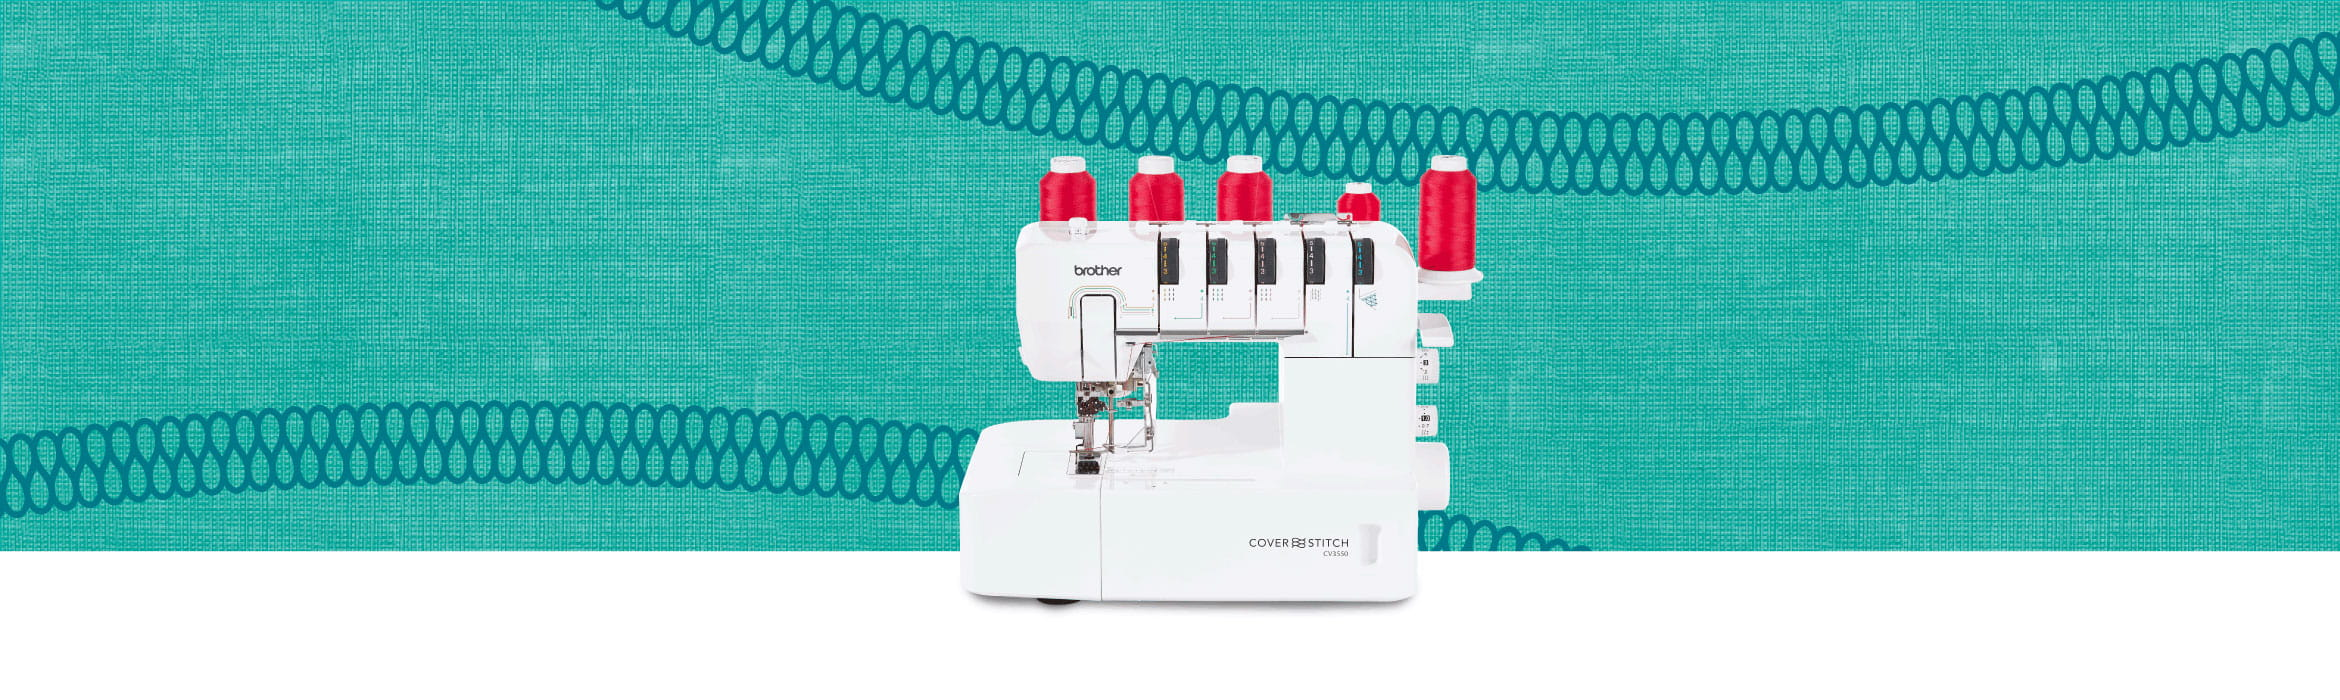 Brother coverstitch machine on green background with stitching